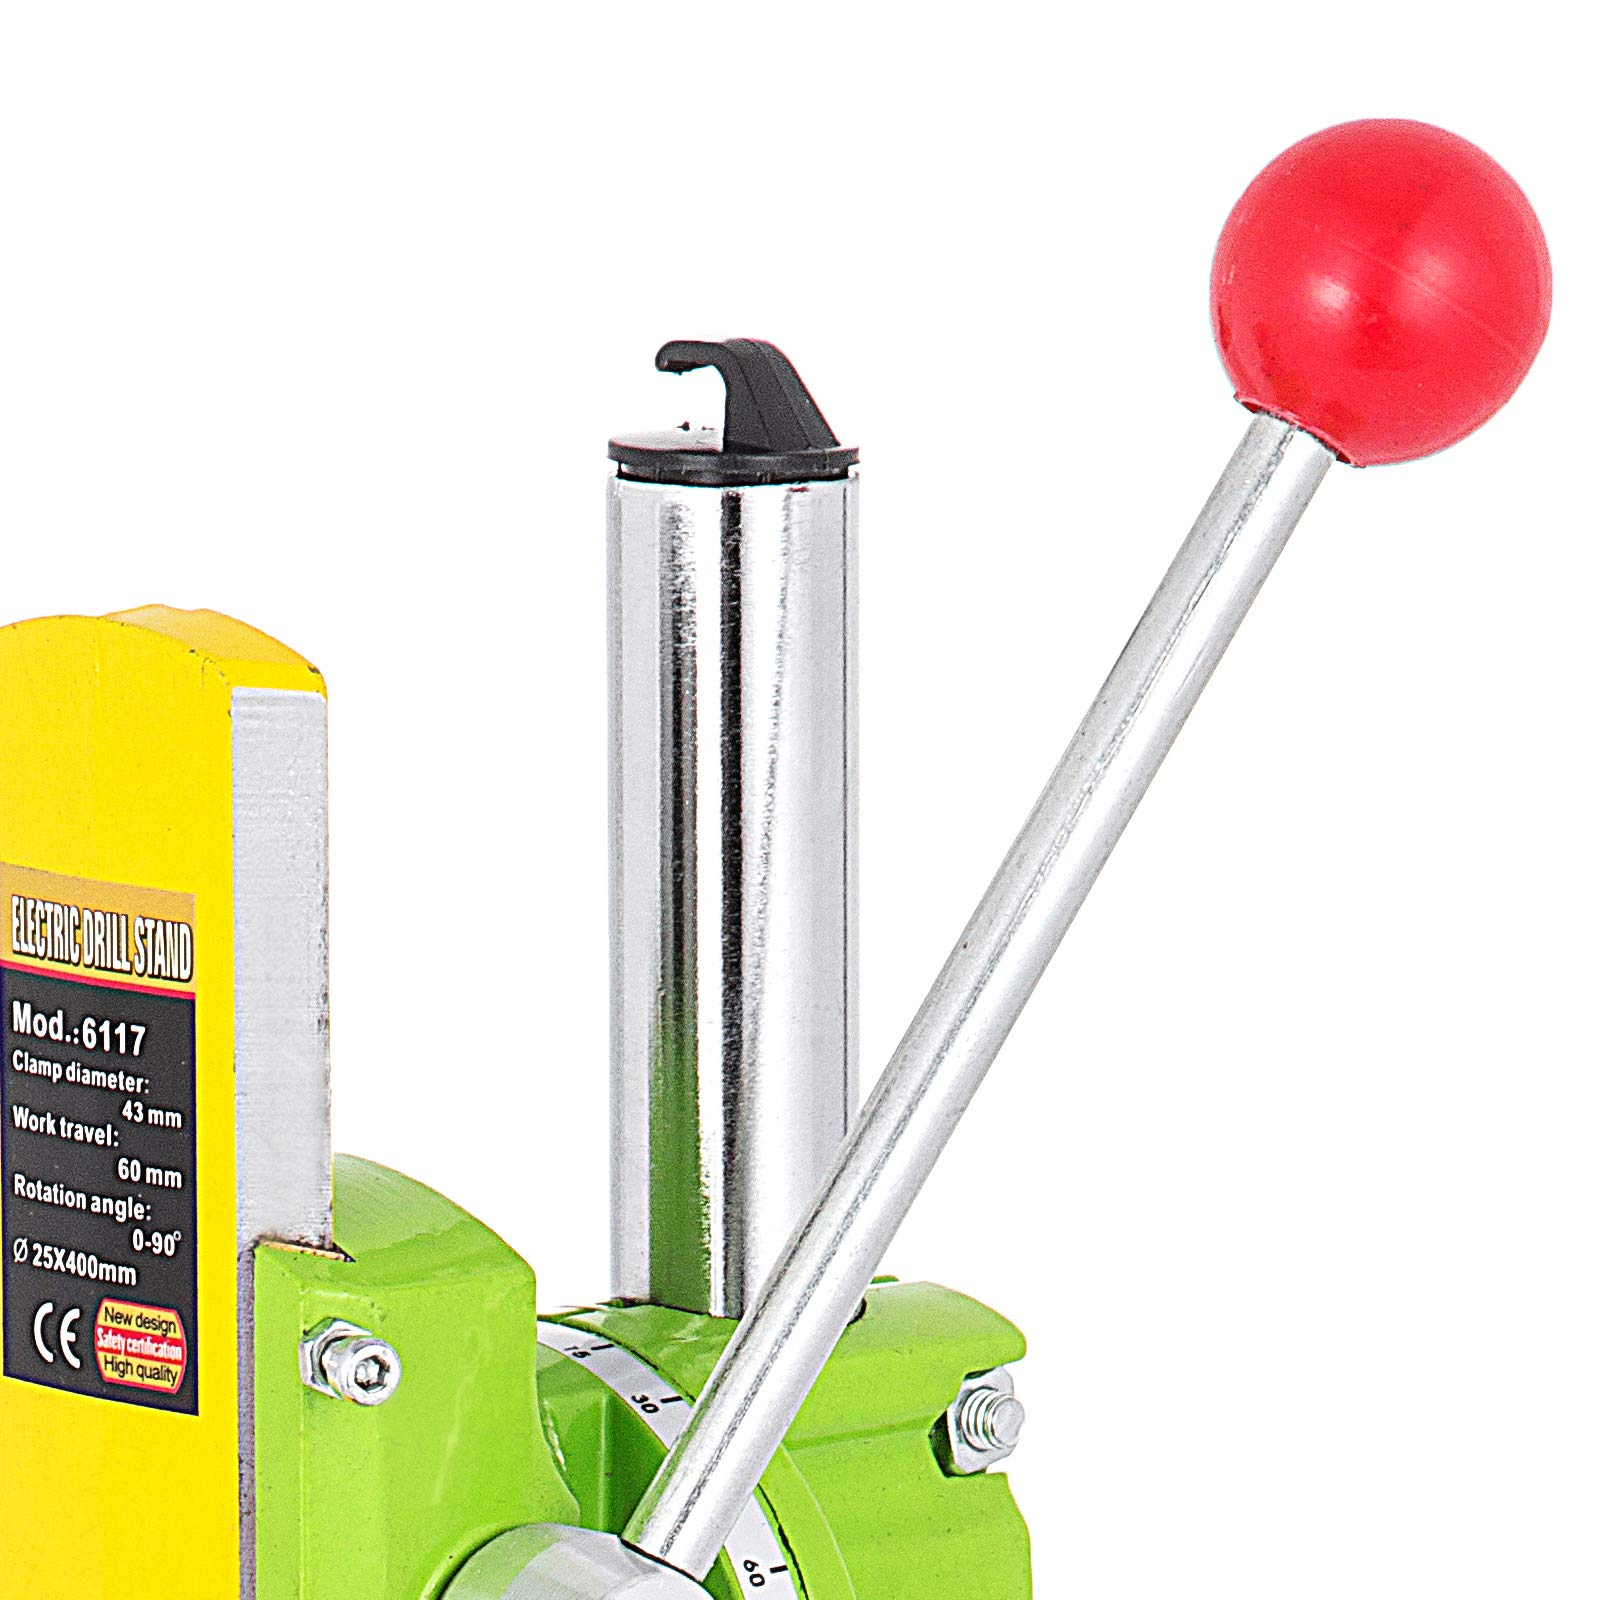 Happybuy Drill Press Stand 90 Degrees Rotary Drill Stand Holder 60mm Work Travel Repair Tool Clamp by Happybuy (Image #8)